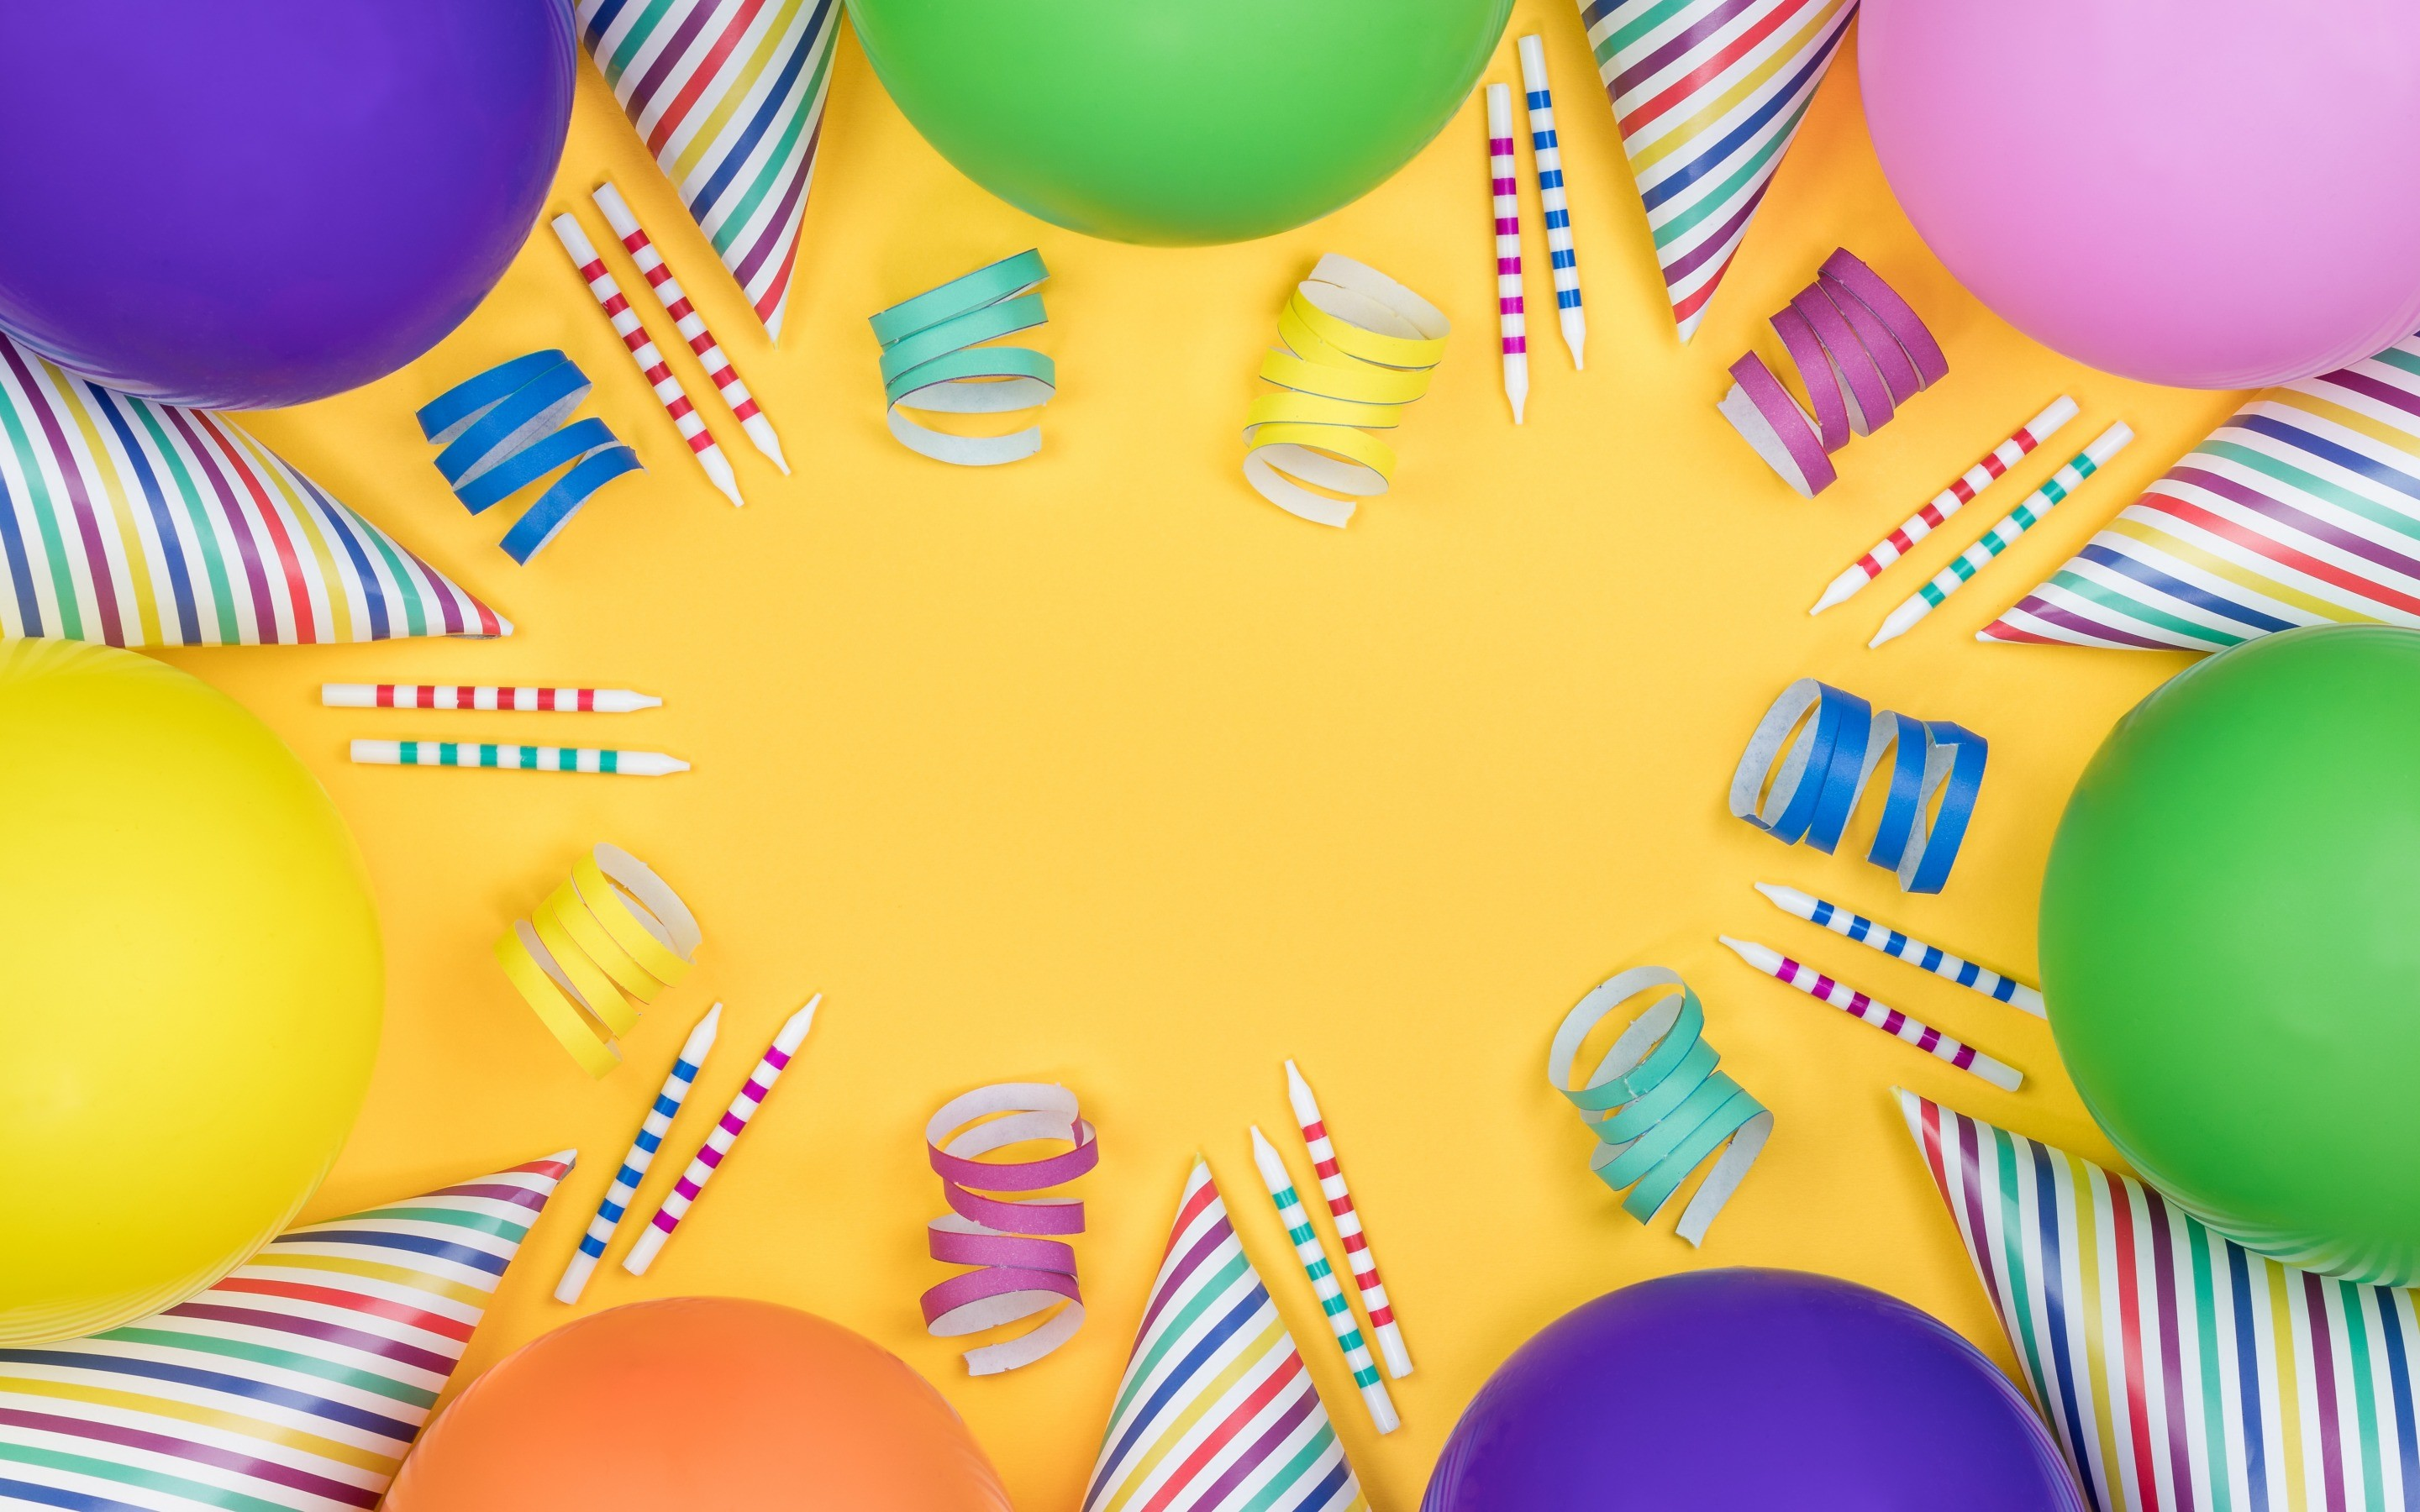 Res: 2880x1800, Happy Birthday, yellow background, multicolored inflatable balls, confetti,  postcard template, congratulations